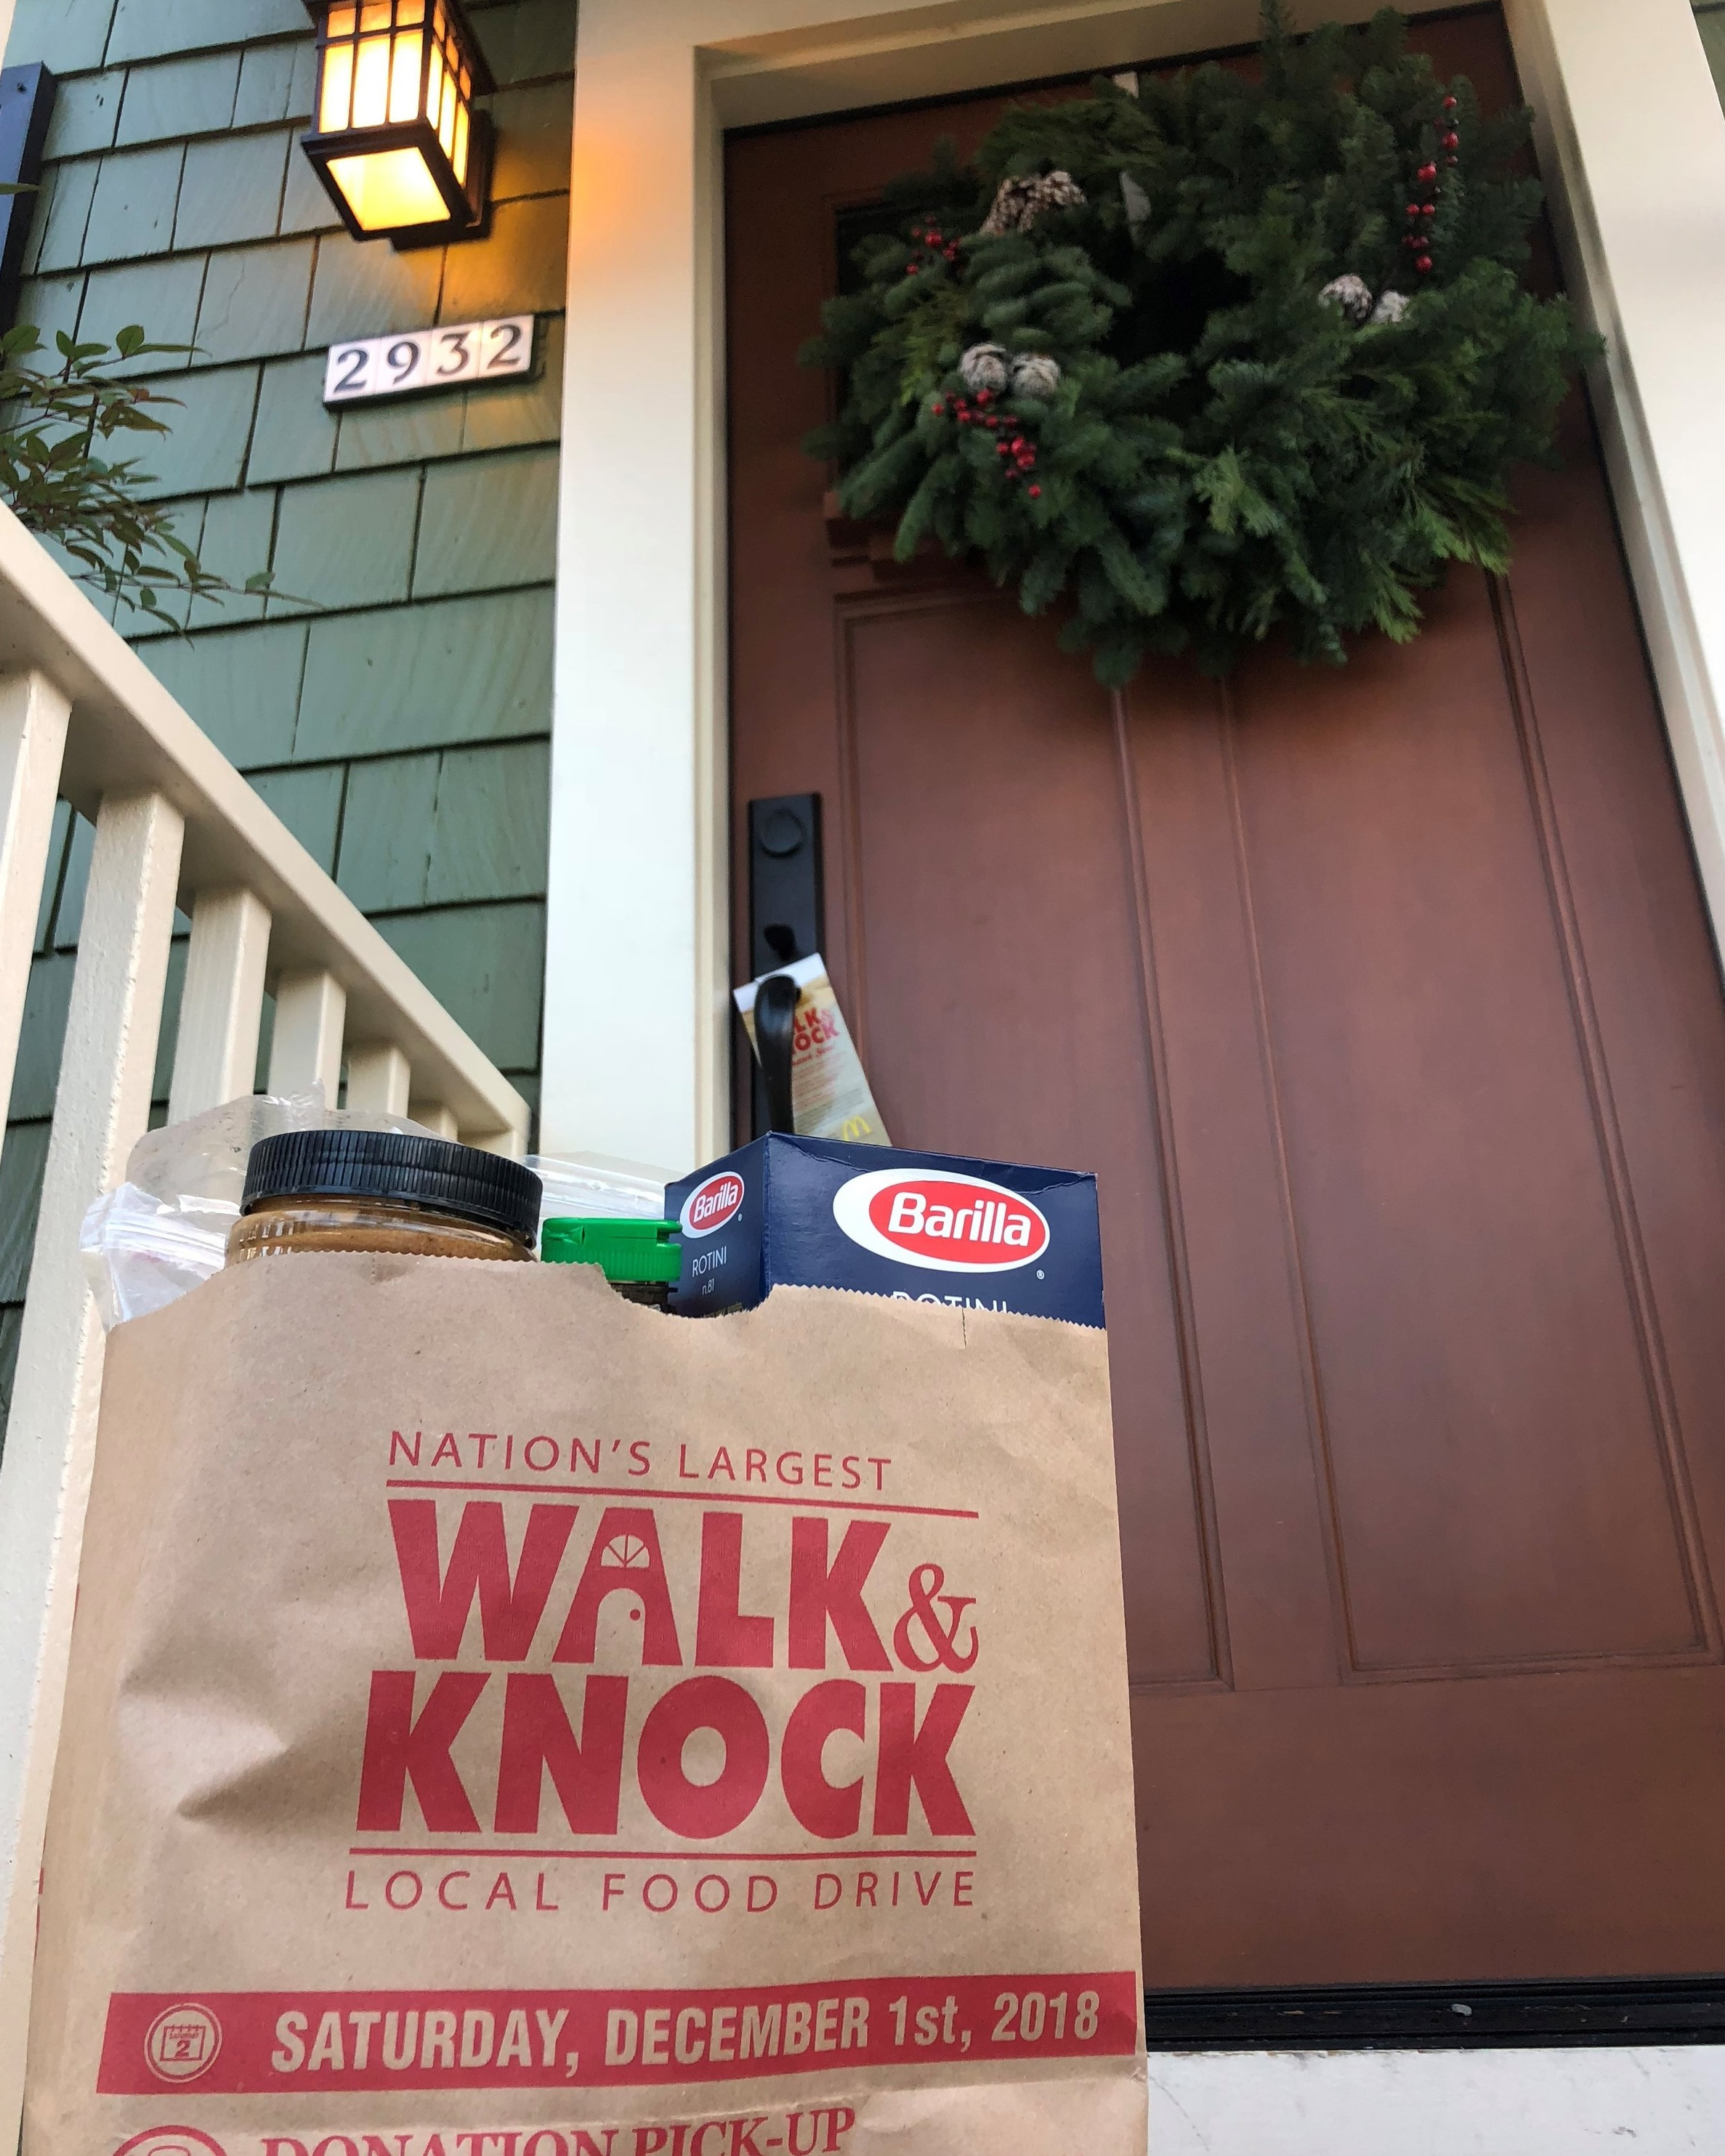 Over 150,000 Walk & Knock bags were distributed, filled, and collected during the food drive this year.